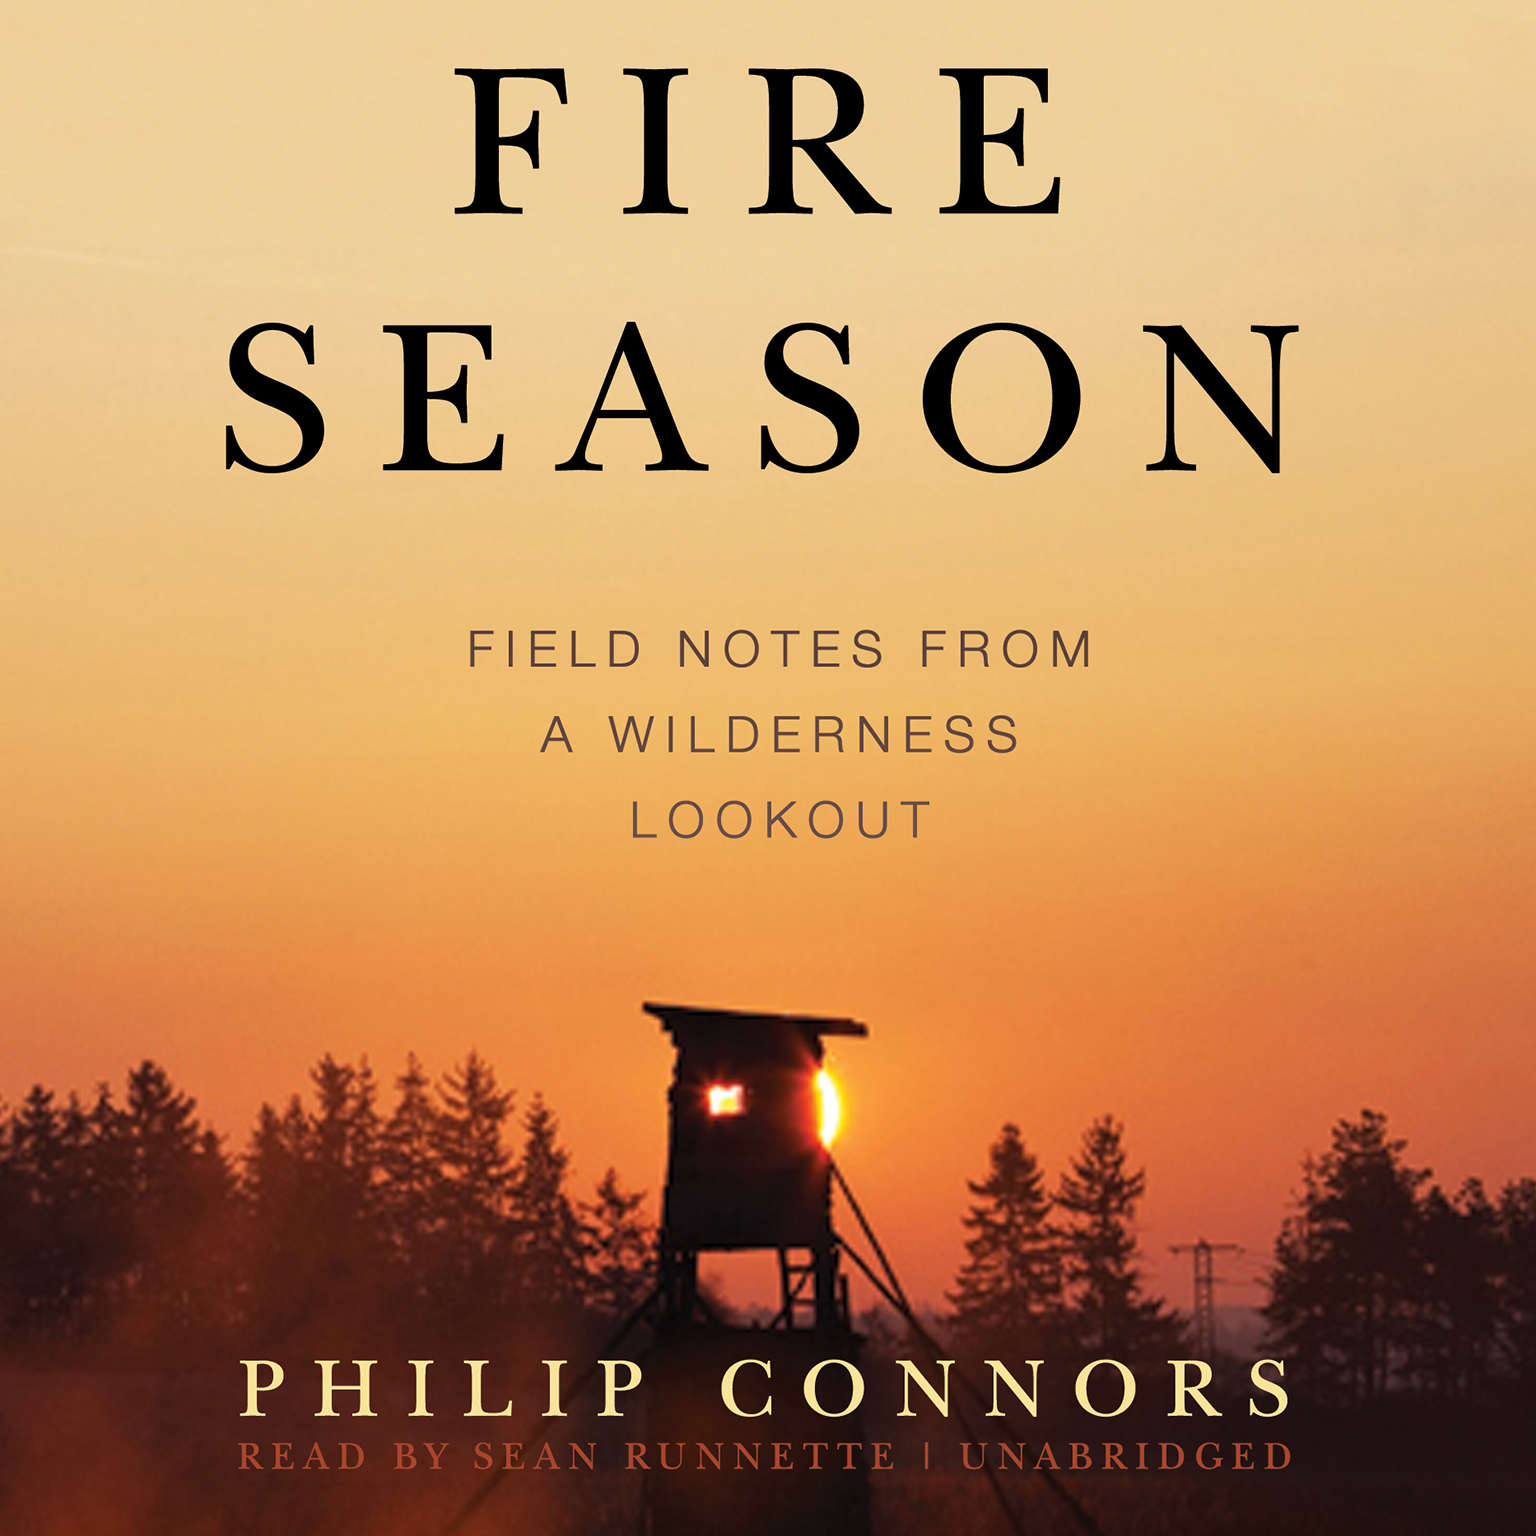 Printable Fire Season: Field Notes from a Wilderness Lookout Audiobook Cover Art